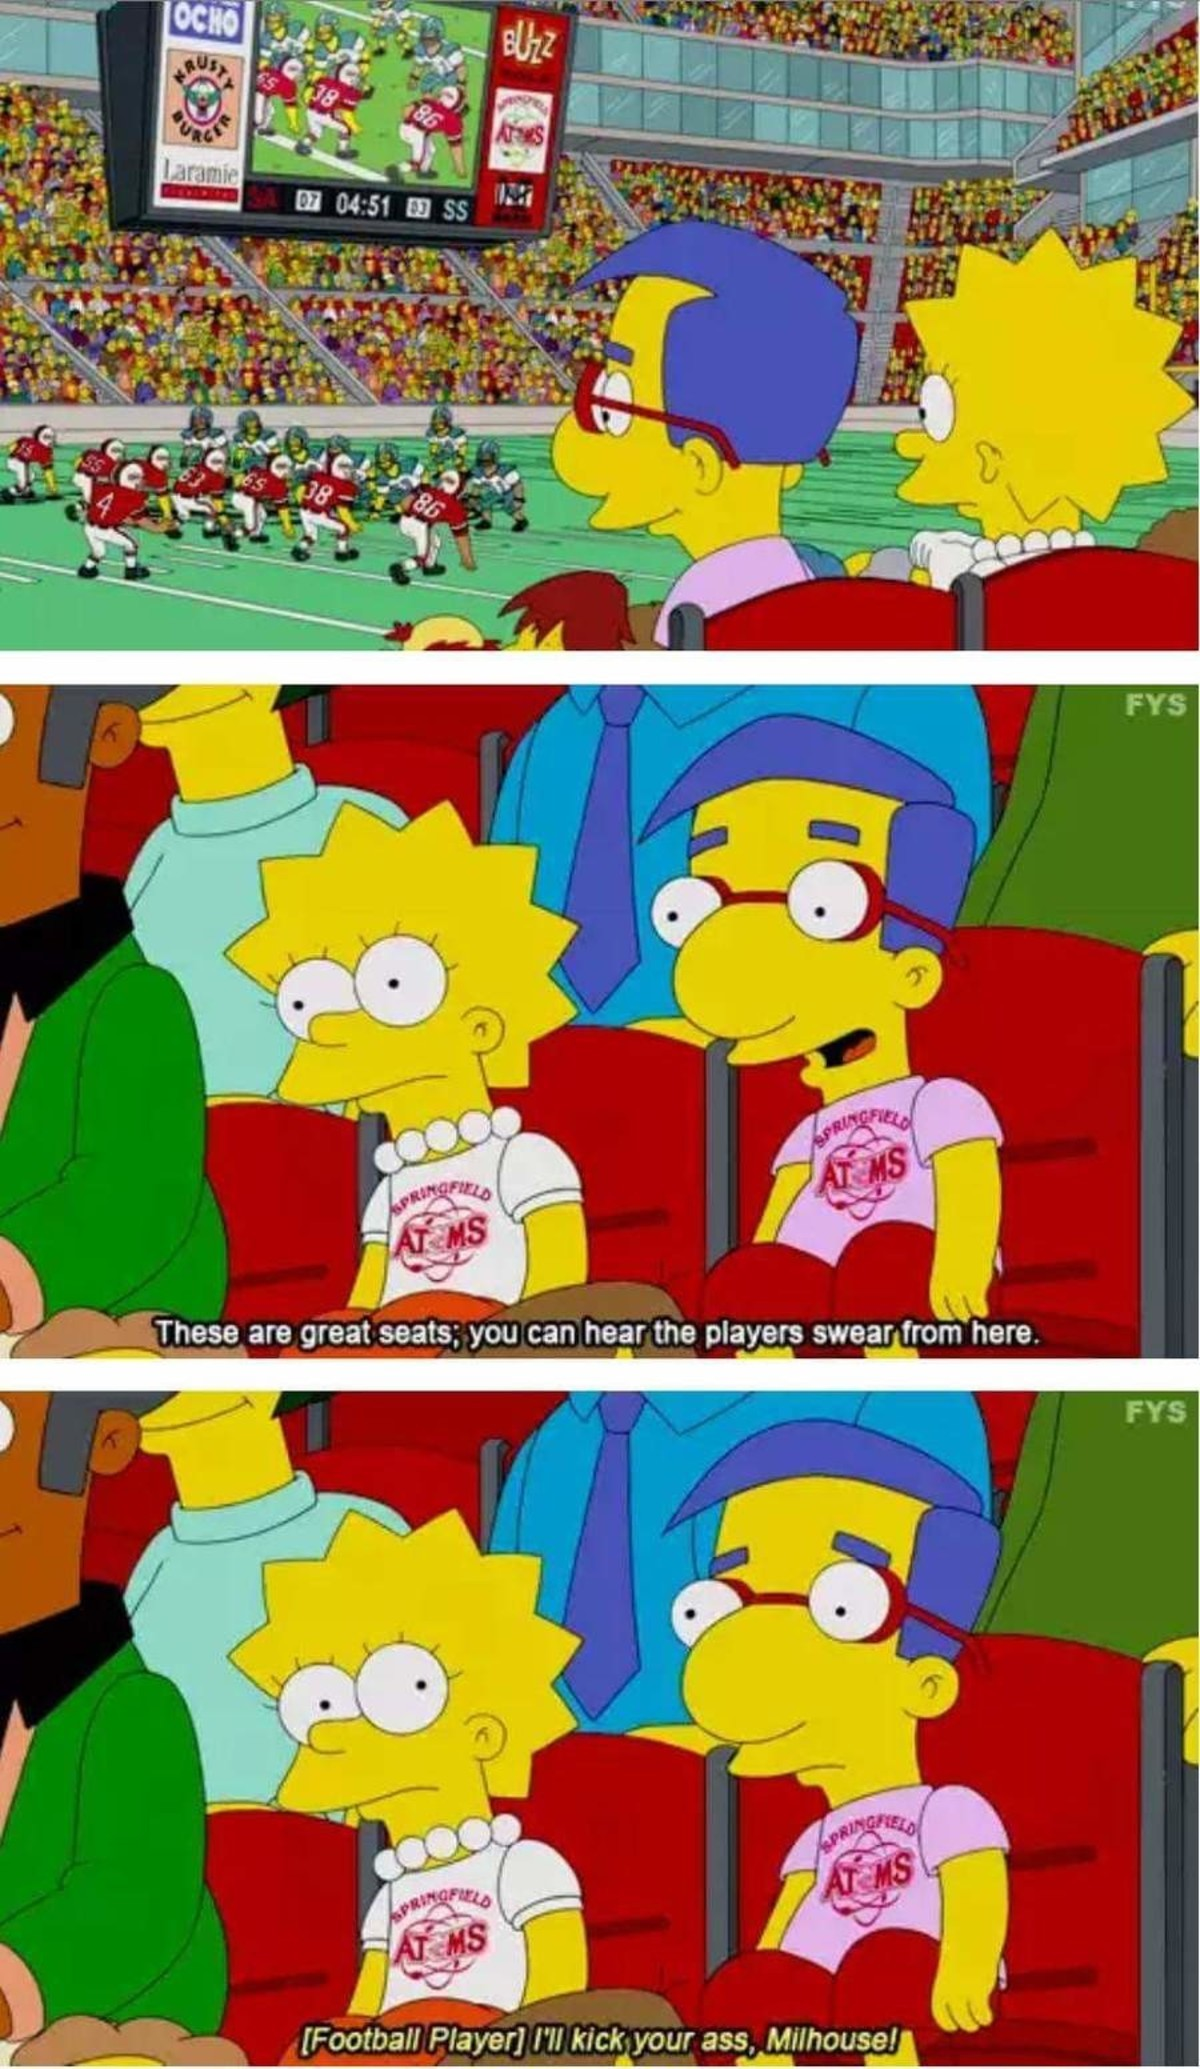 Milhoose. .. Milhoose is the Canadian Milhouse you nonce.